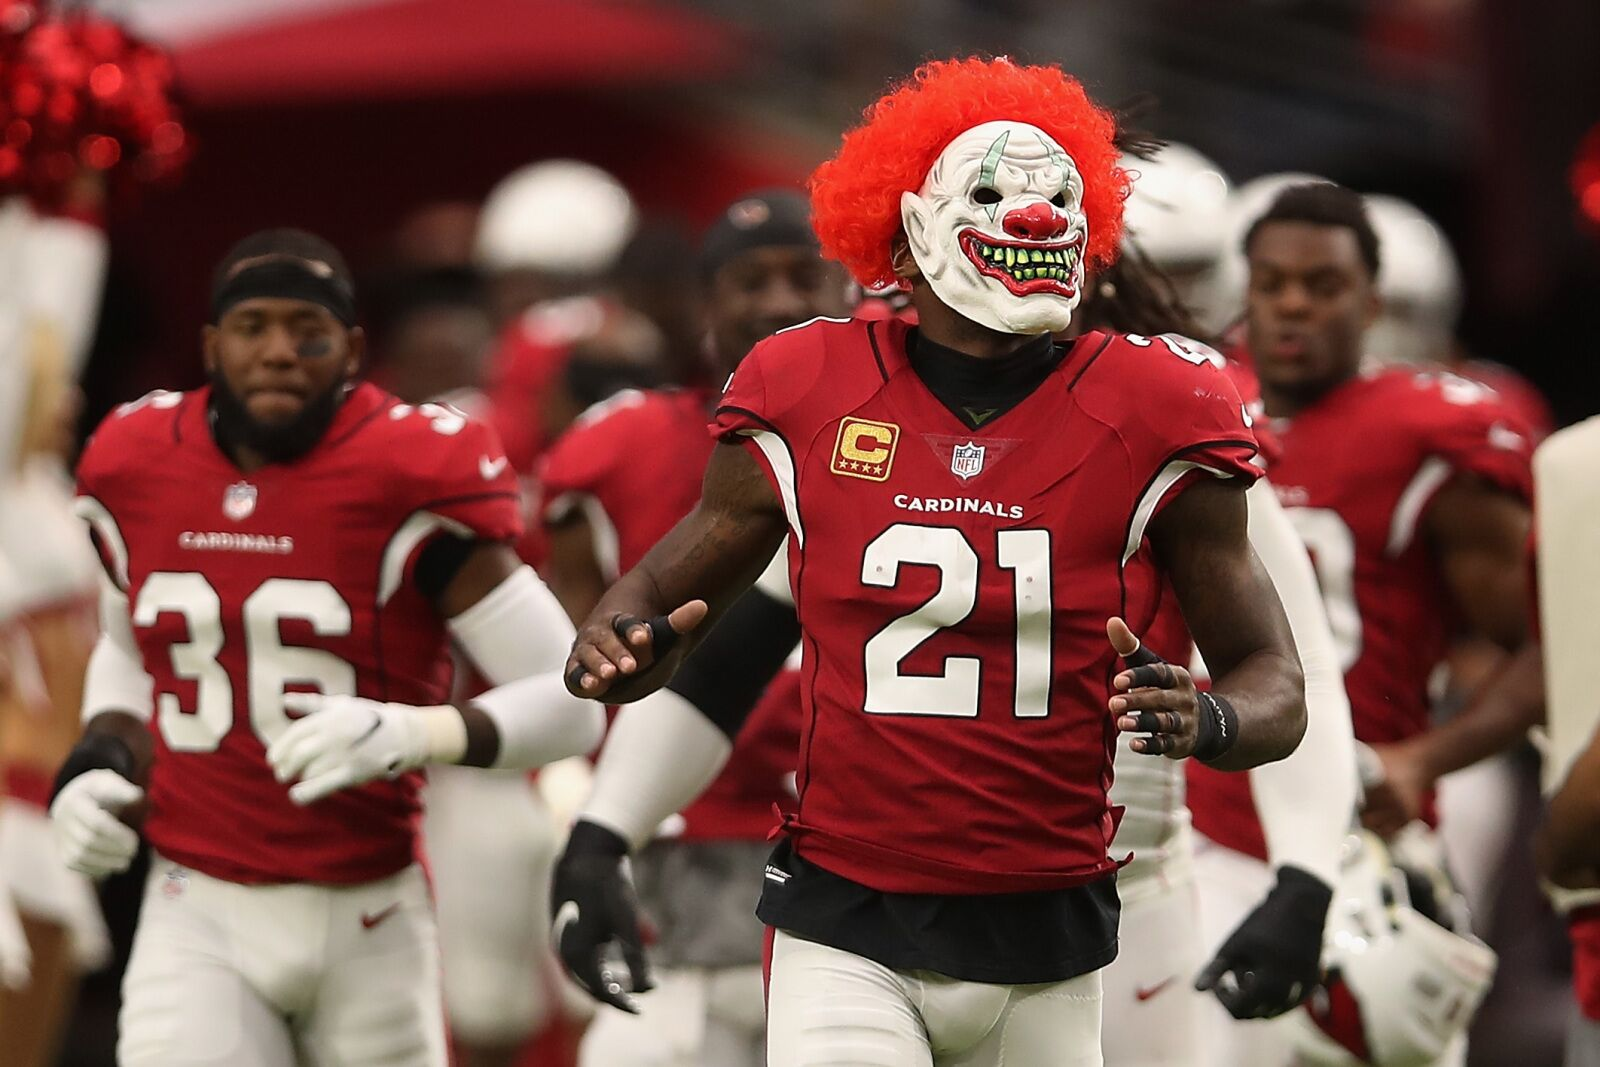 Patrick Peterson has decided to play games